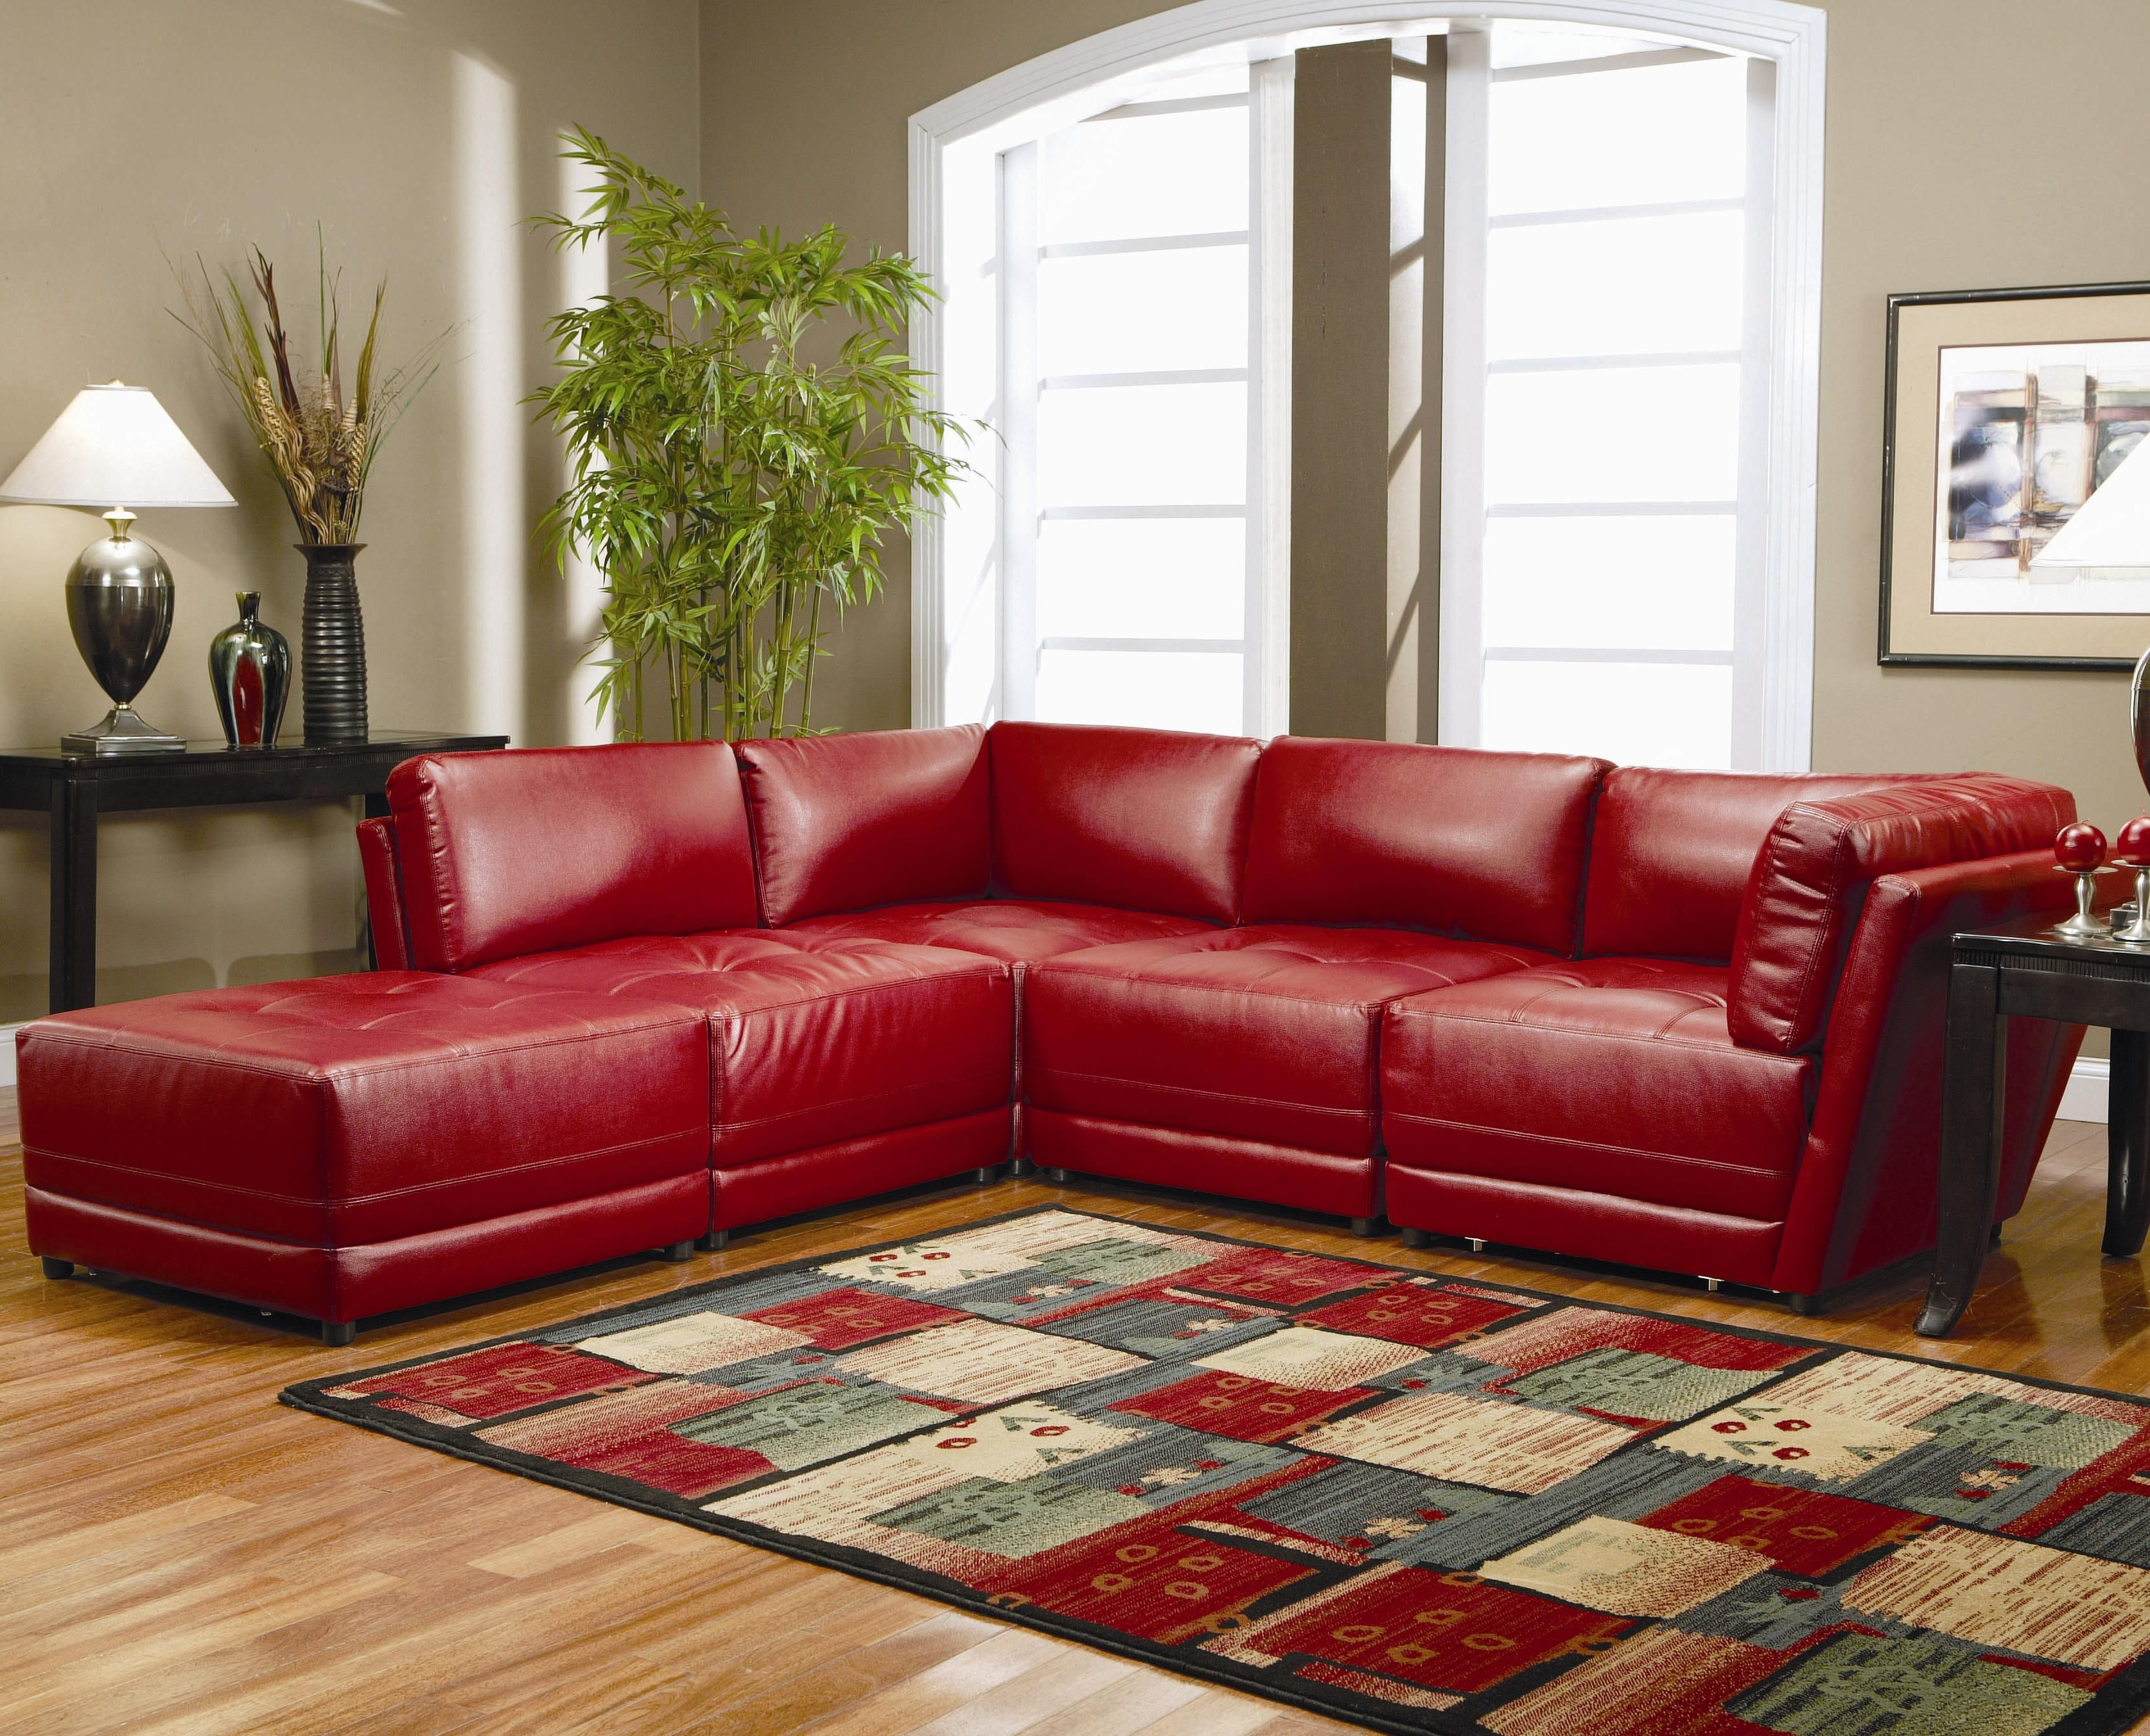 How To Decorate A Small Living Room With Sofa And Loveseat Klippan Cover Malaysia Warm Red Leather Sectional L Shaped Design Ideas For